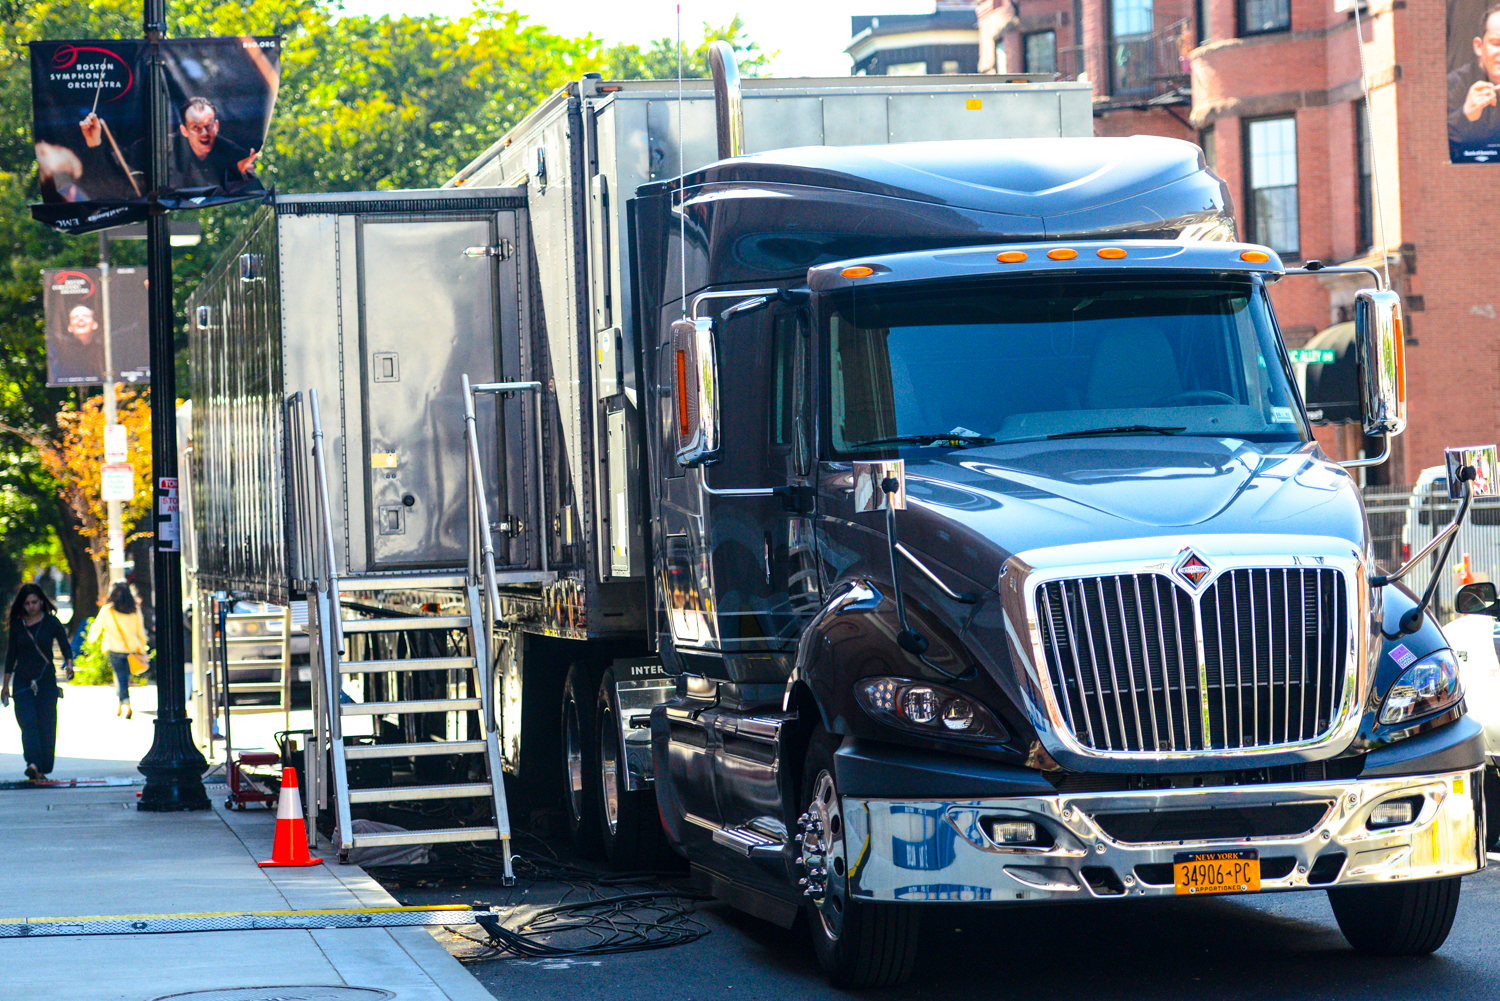 One of two semi trucks with many many cables coming out of them to run television recording at Symphony Hall this week.